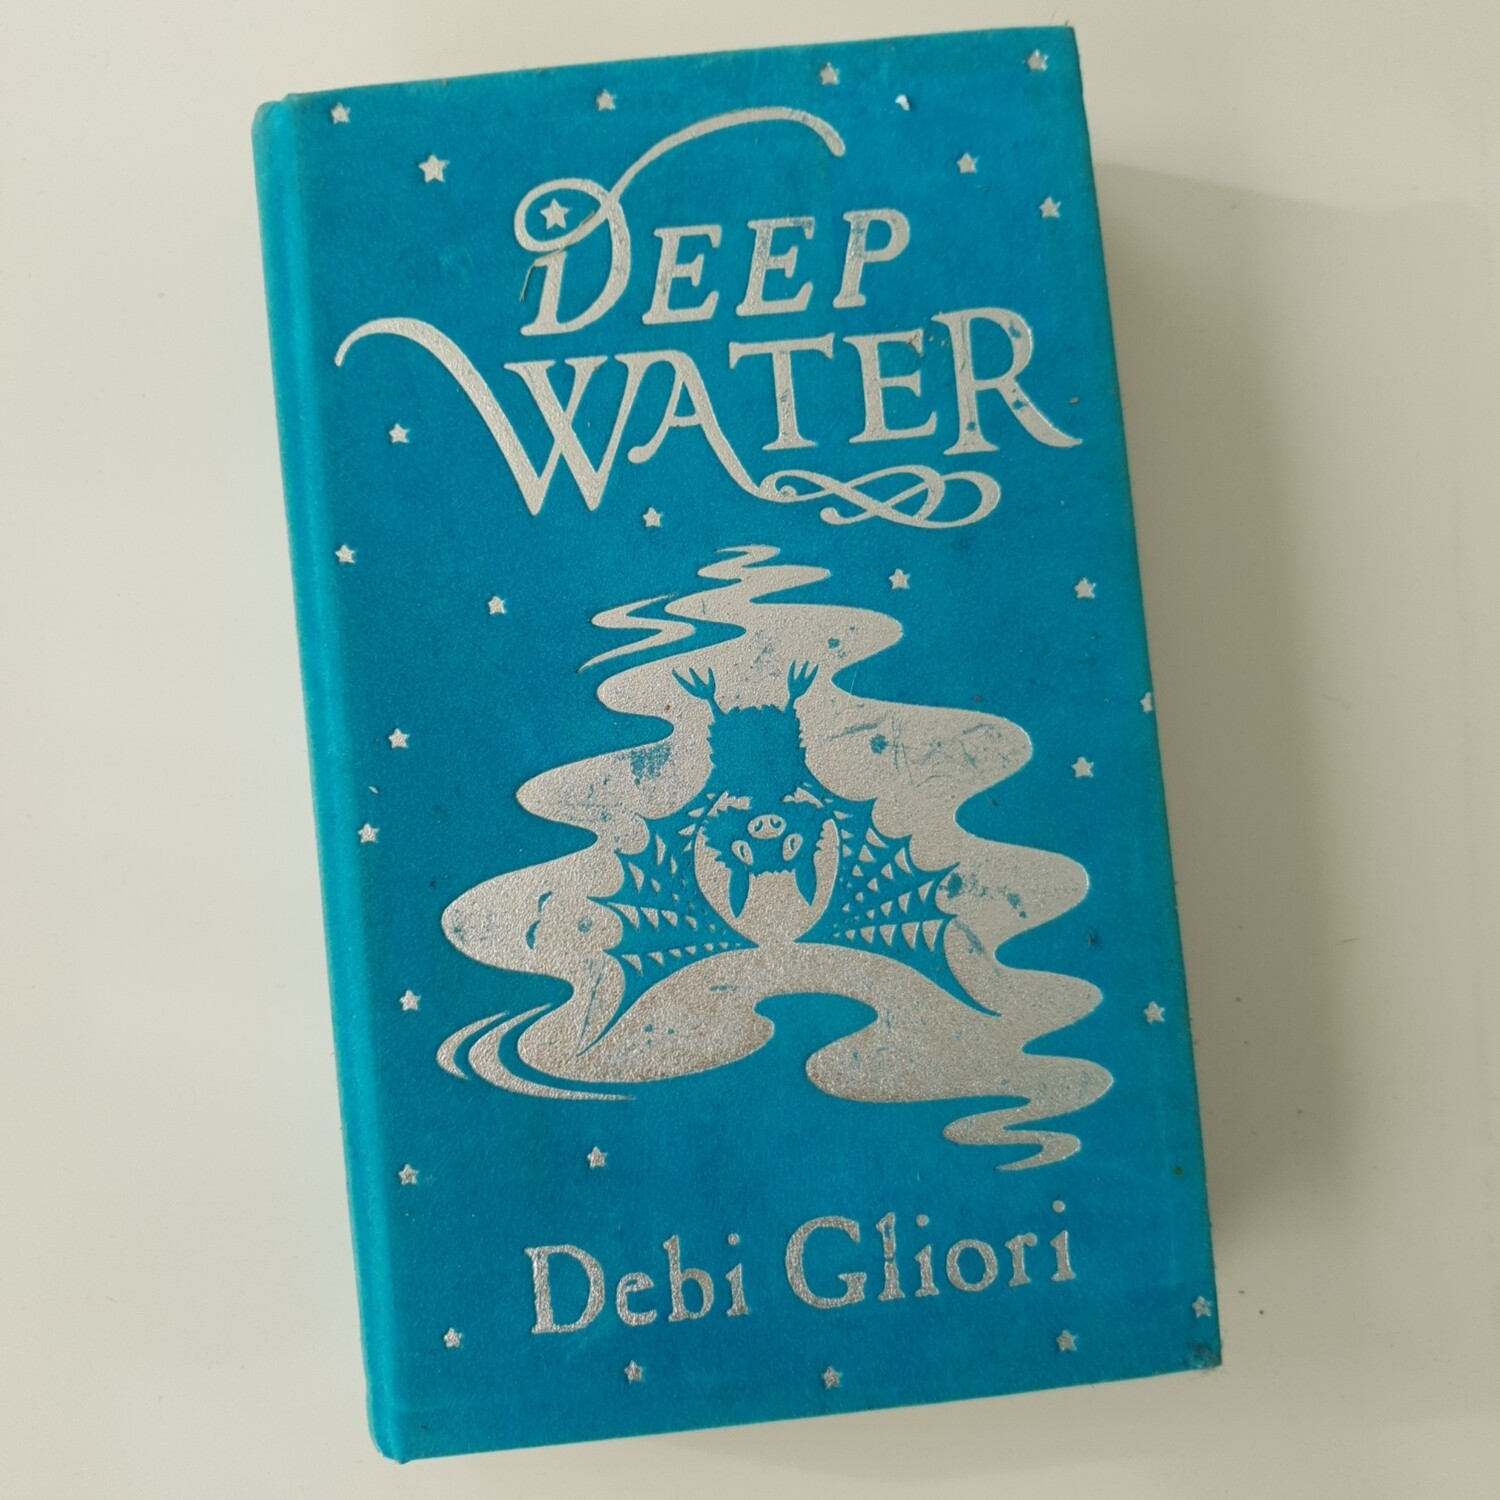 Deep Water by Debo Gliori Notebook - felt cover